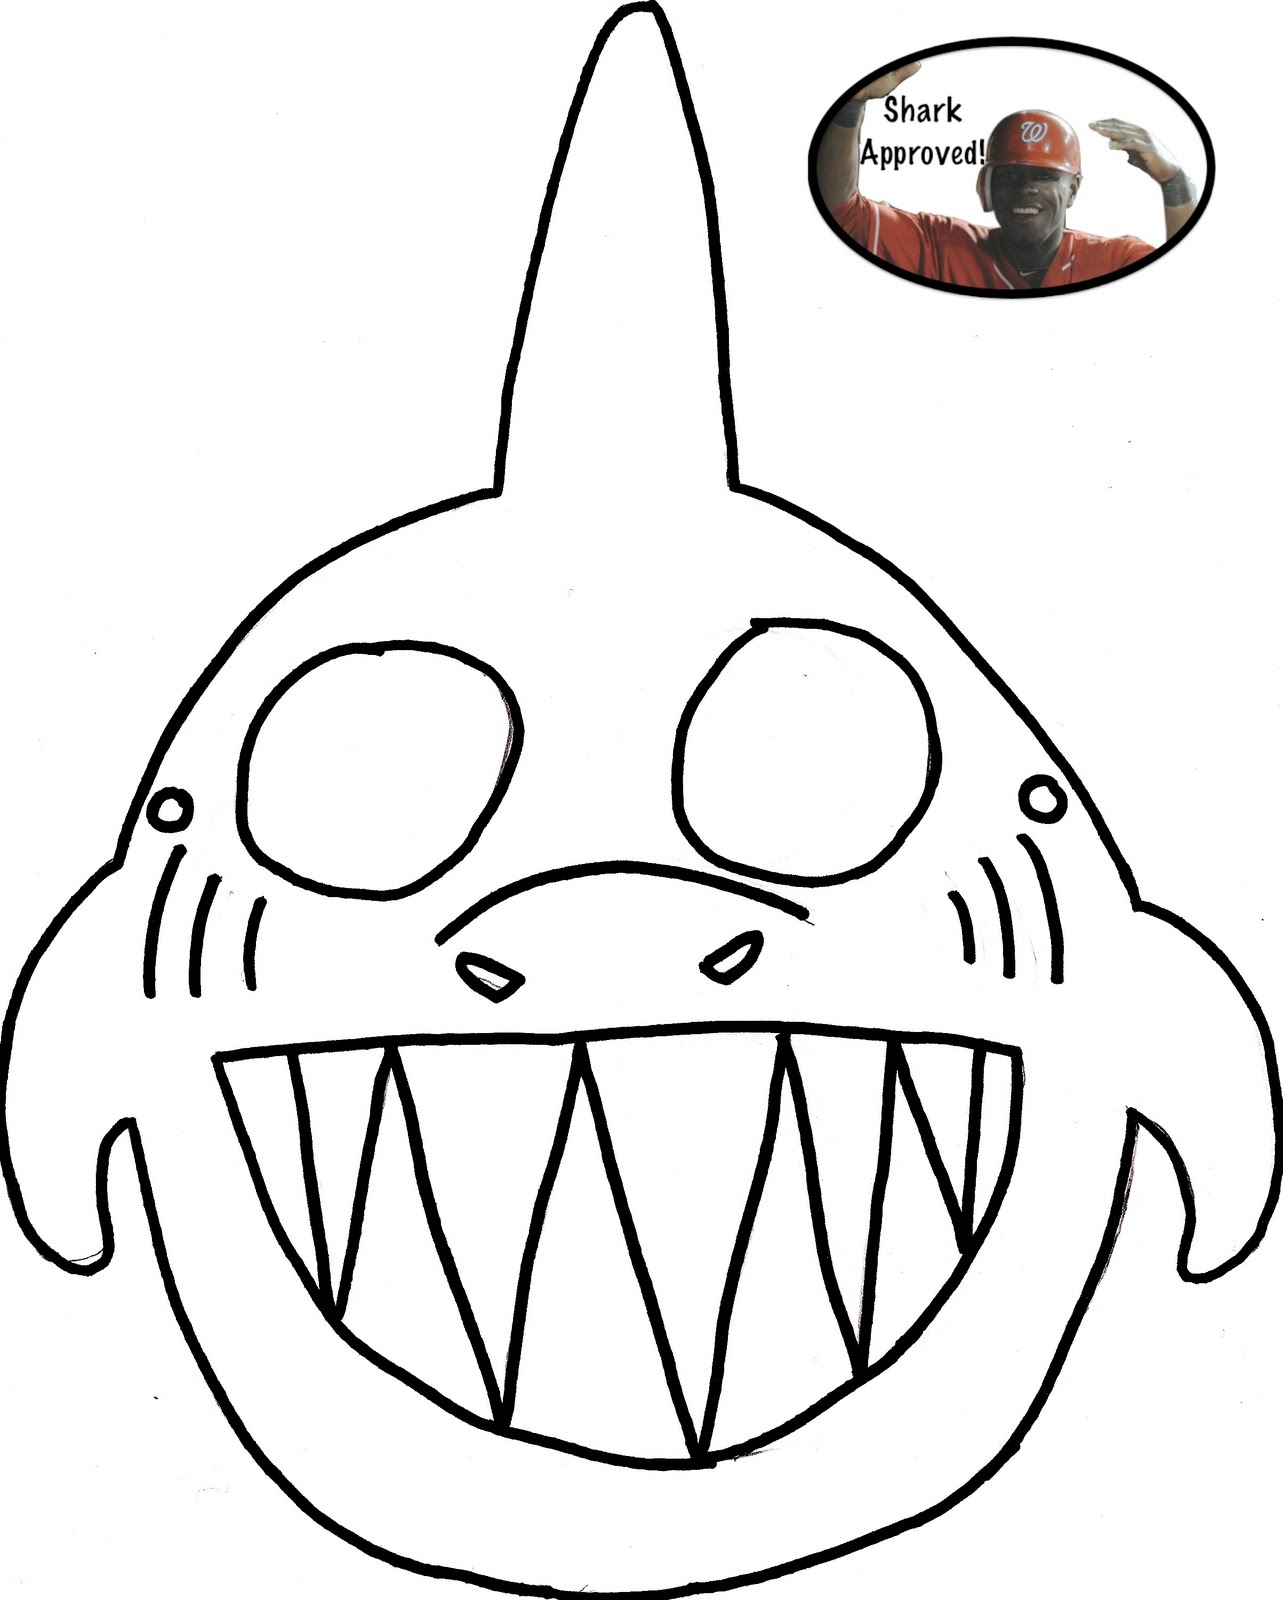 crab coloring pages - shark mask printable